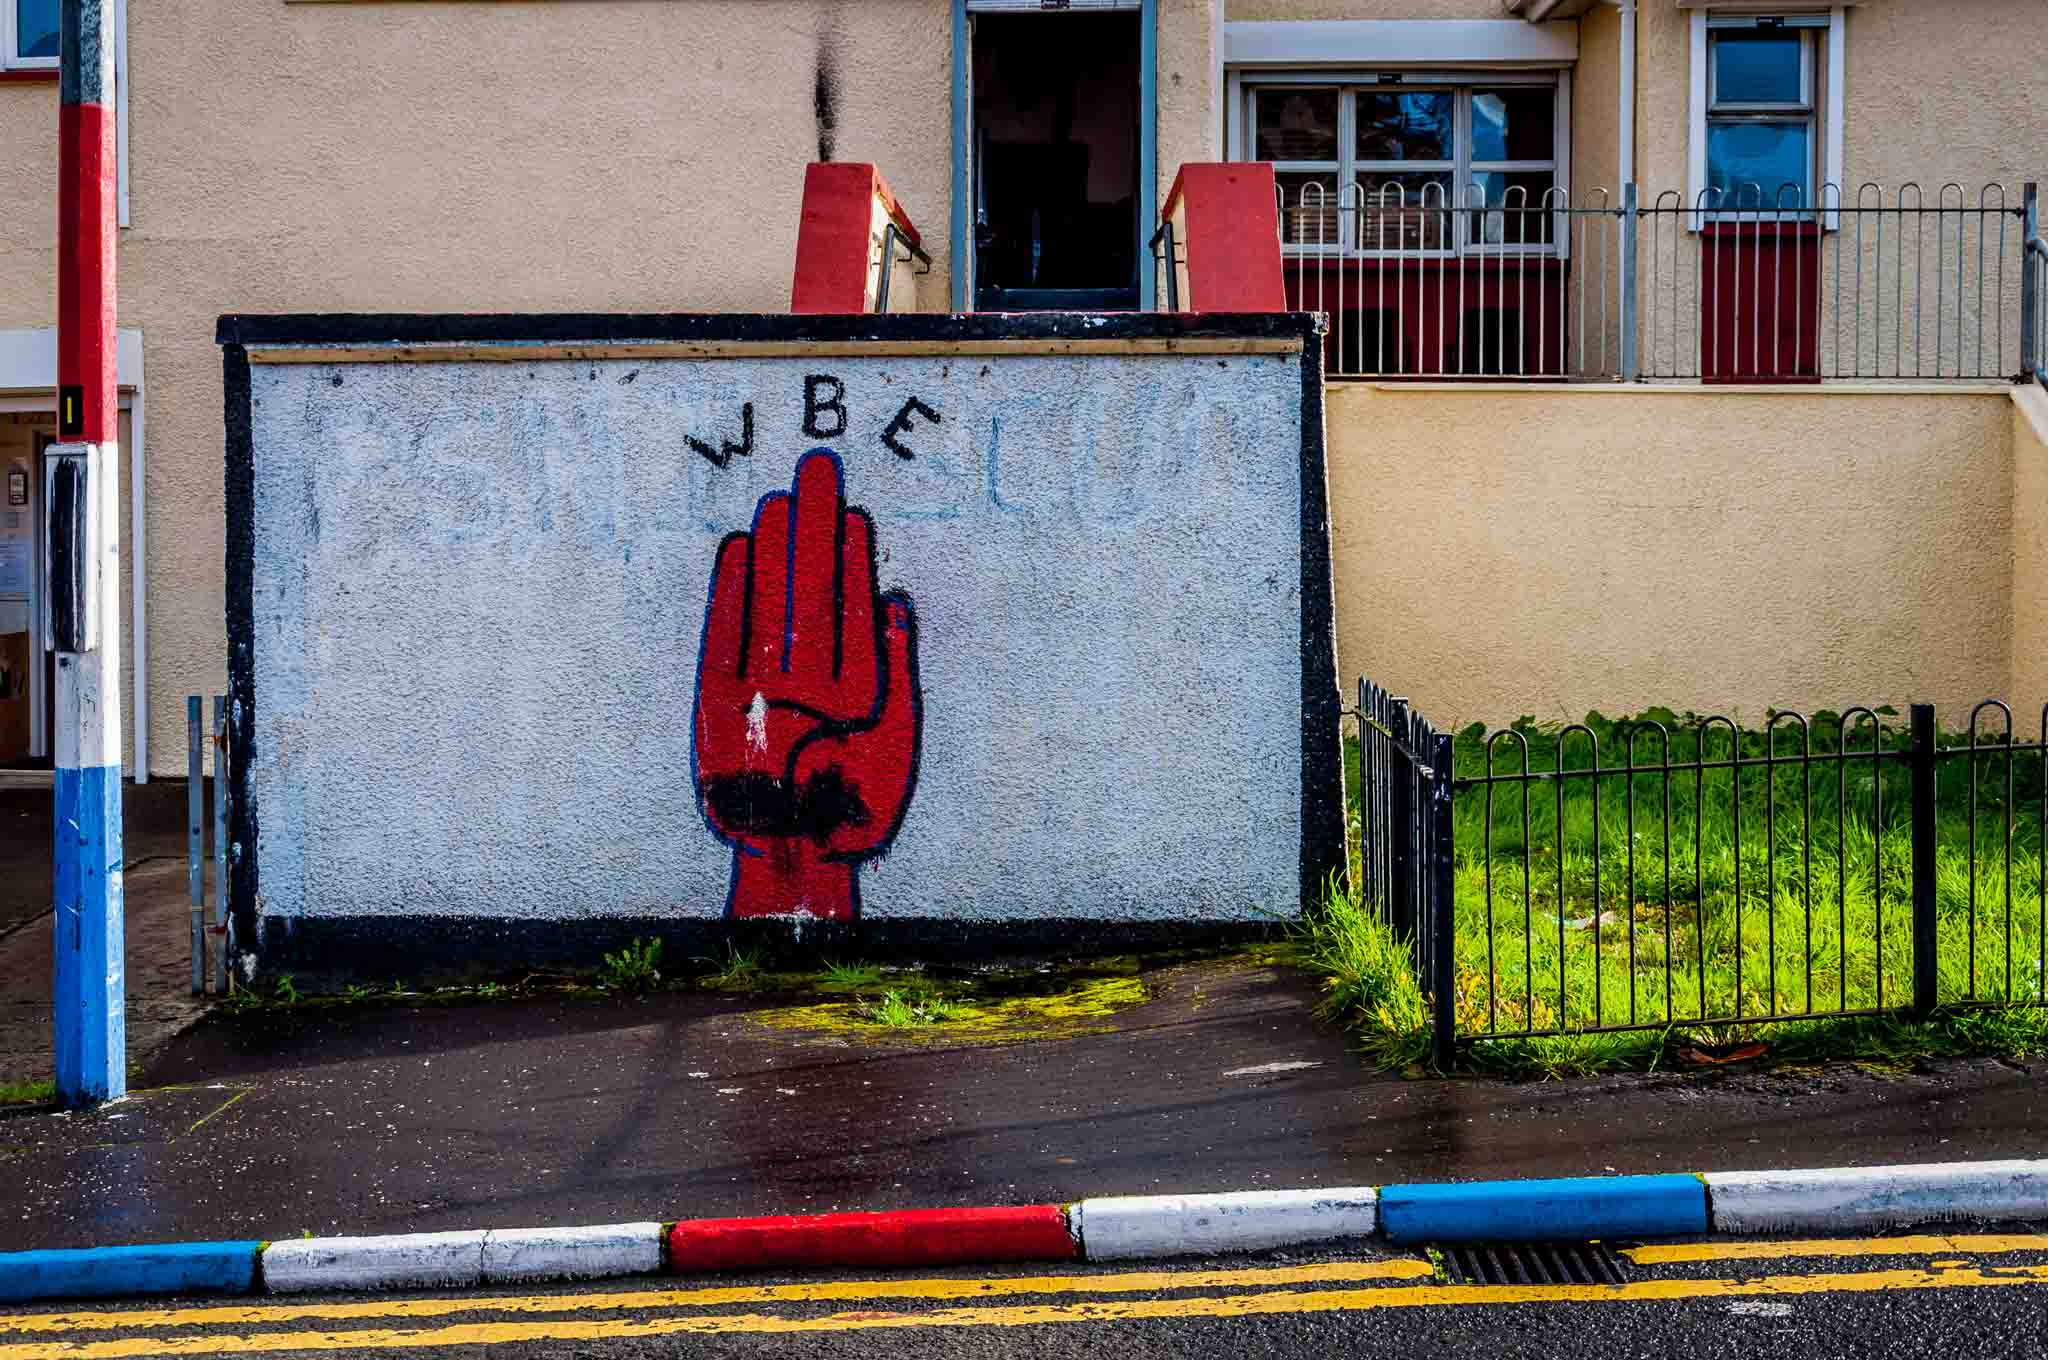 Loyalist mural of the Red Hand of Ulster, one of the Derry murals